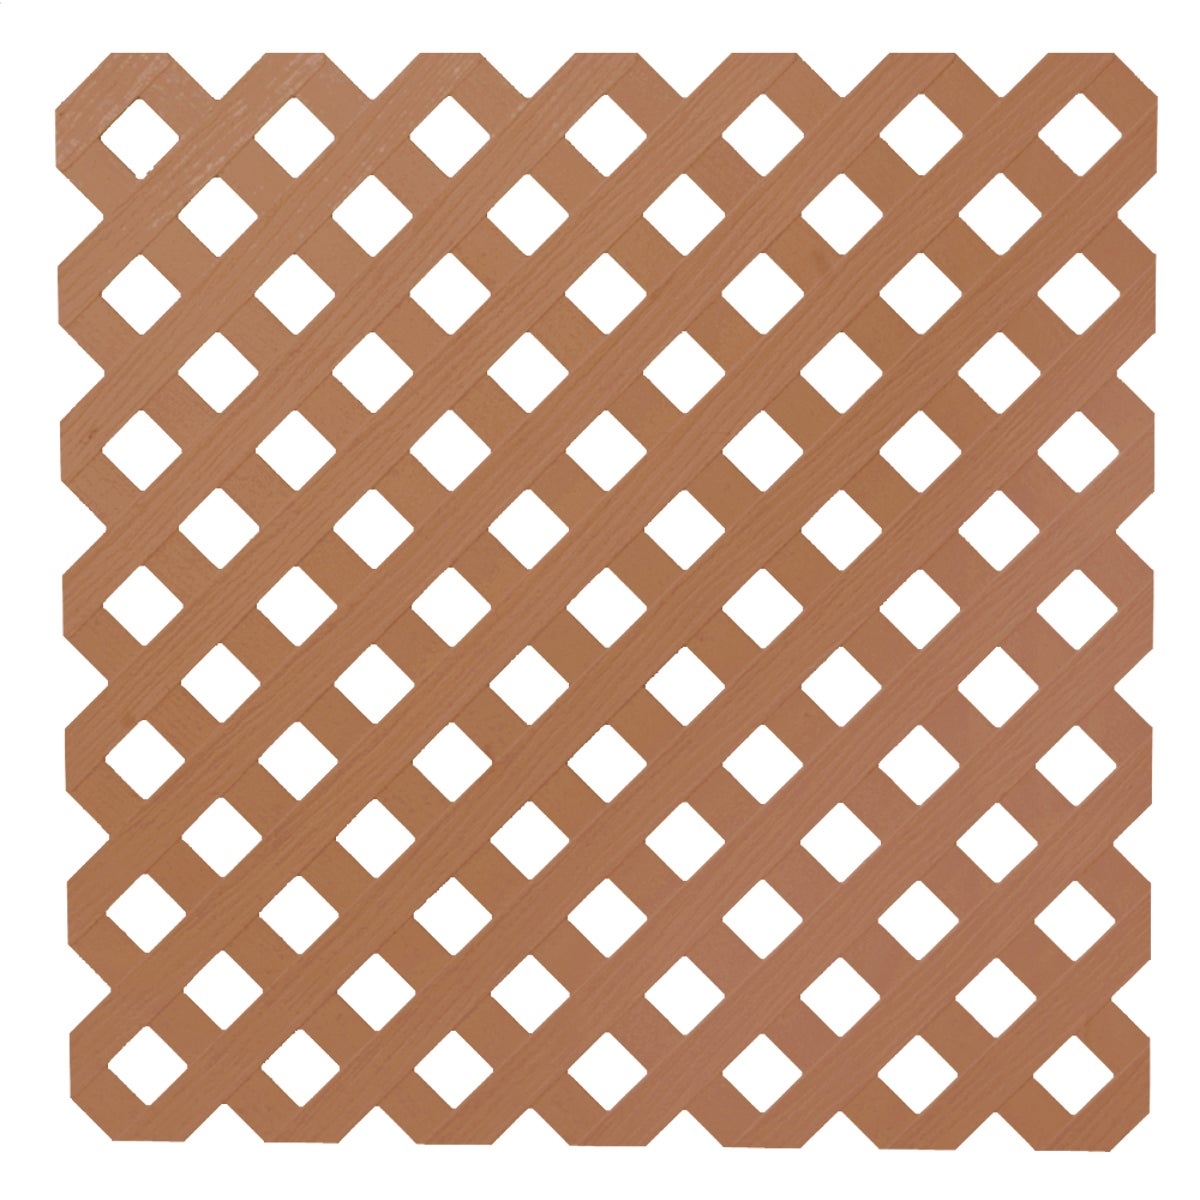 4X8 RDWD PRIVACY LATTICE